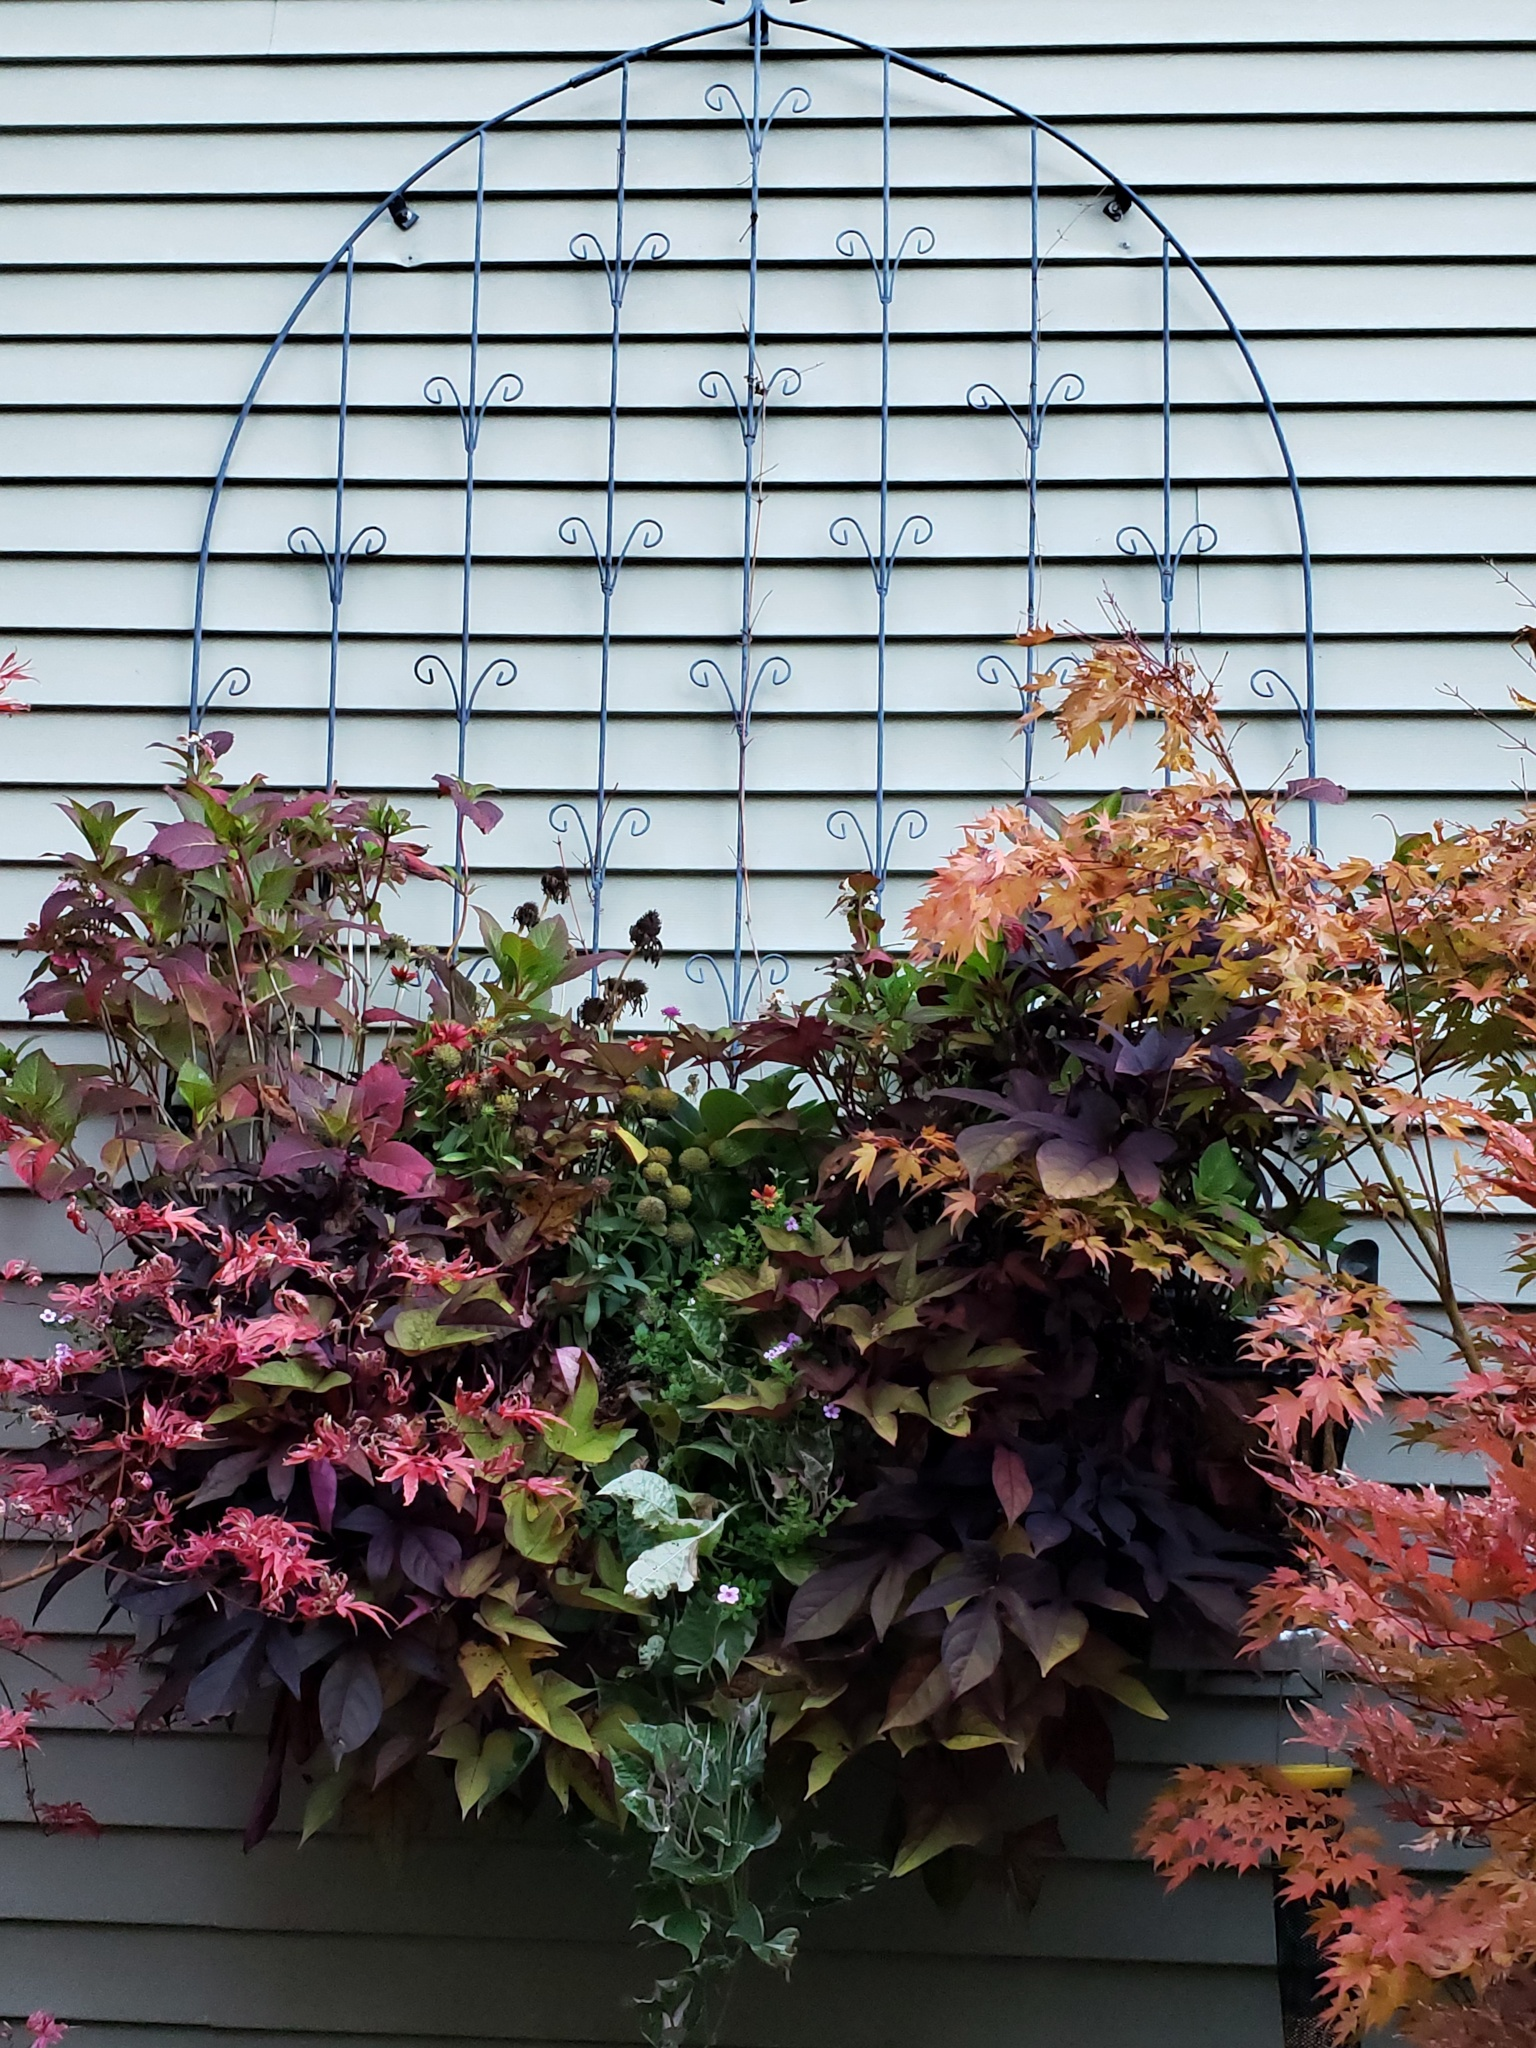 larger planter filled with dark foliage plants